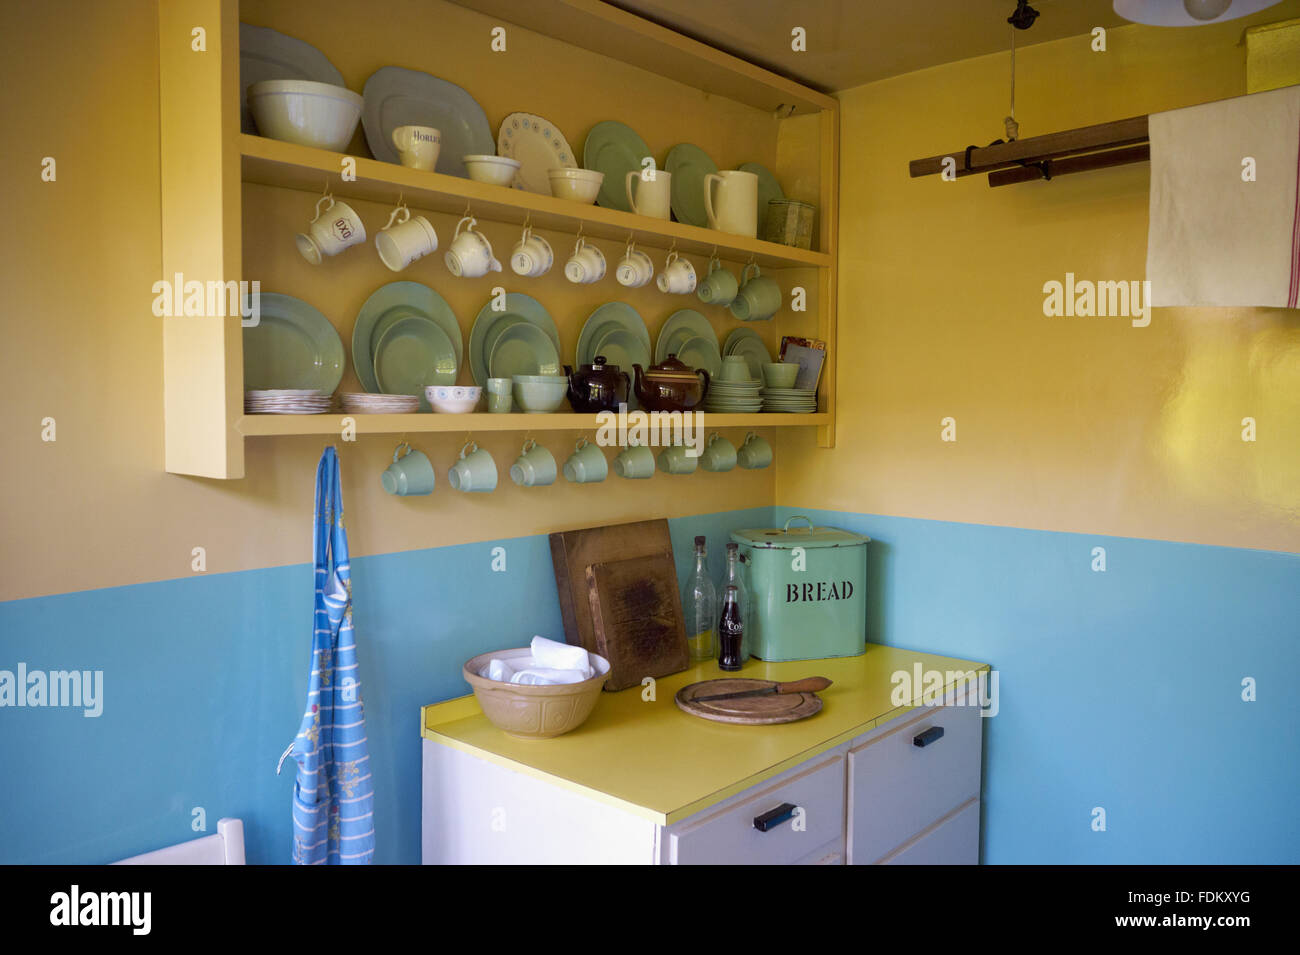 Shelves With Crockery And Cupboard Beneath In The Kitchen At Mendips Stock Photo Alamy